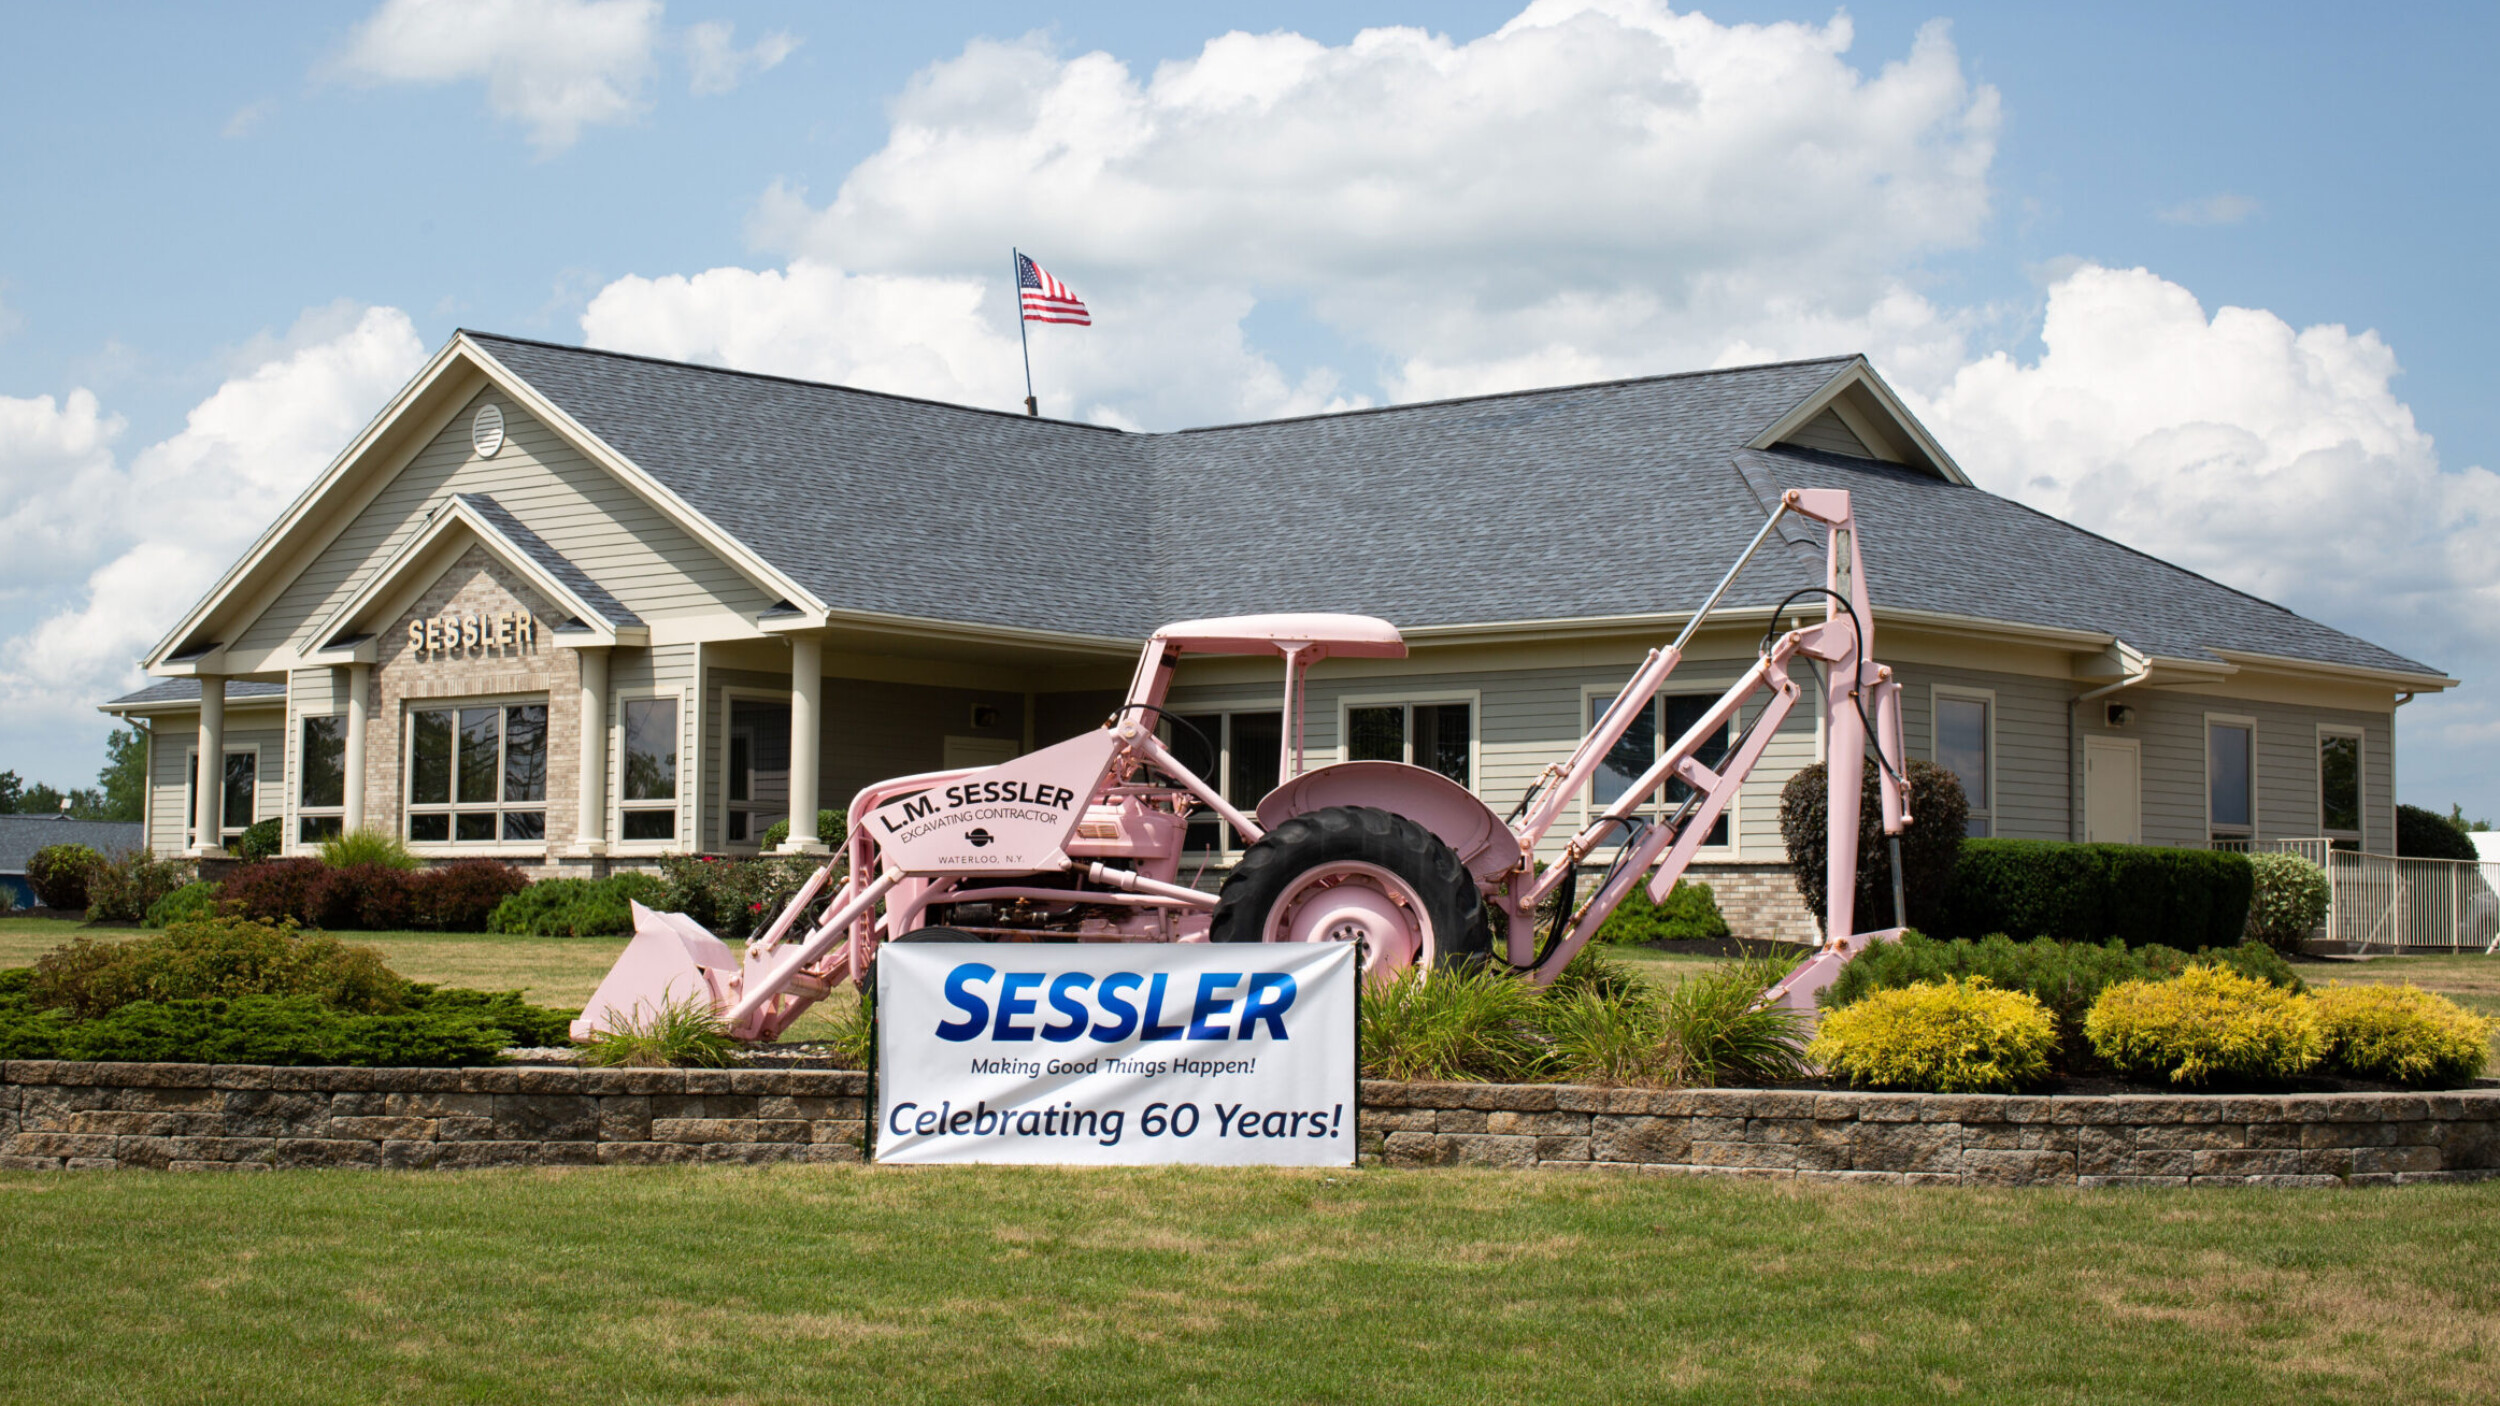 Sessler Wrecking Celebrating 60 Years Pink Tractor Building